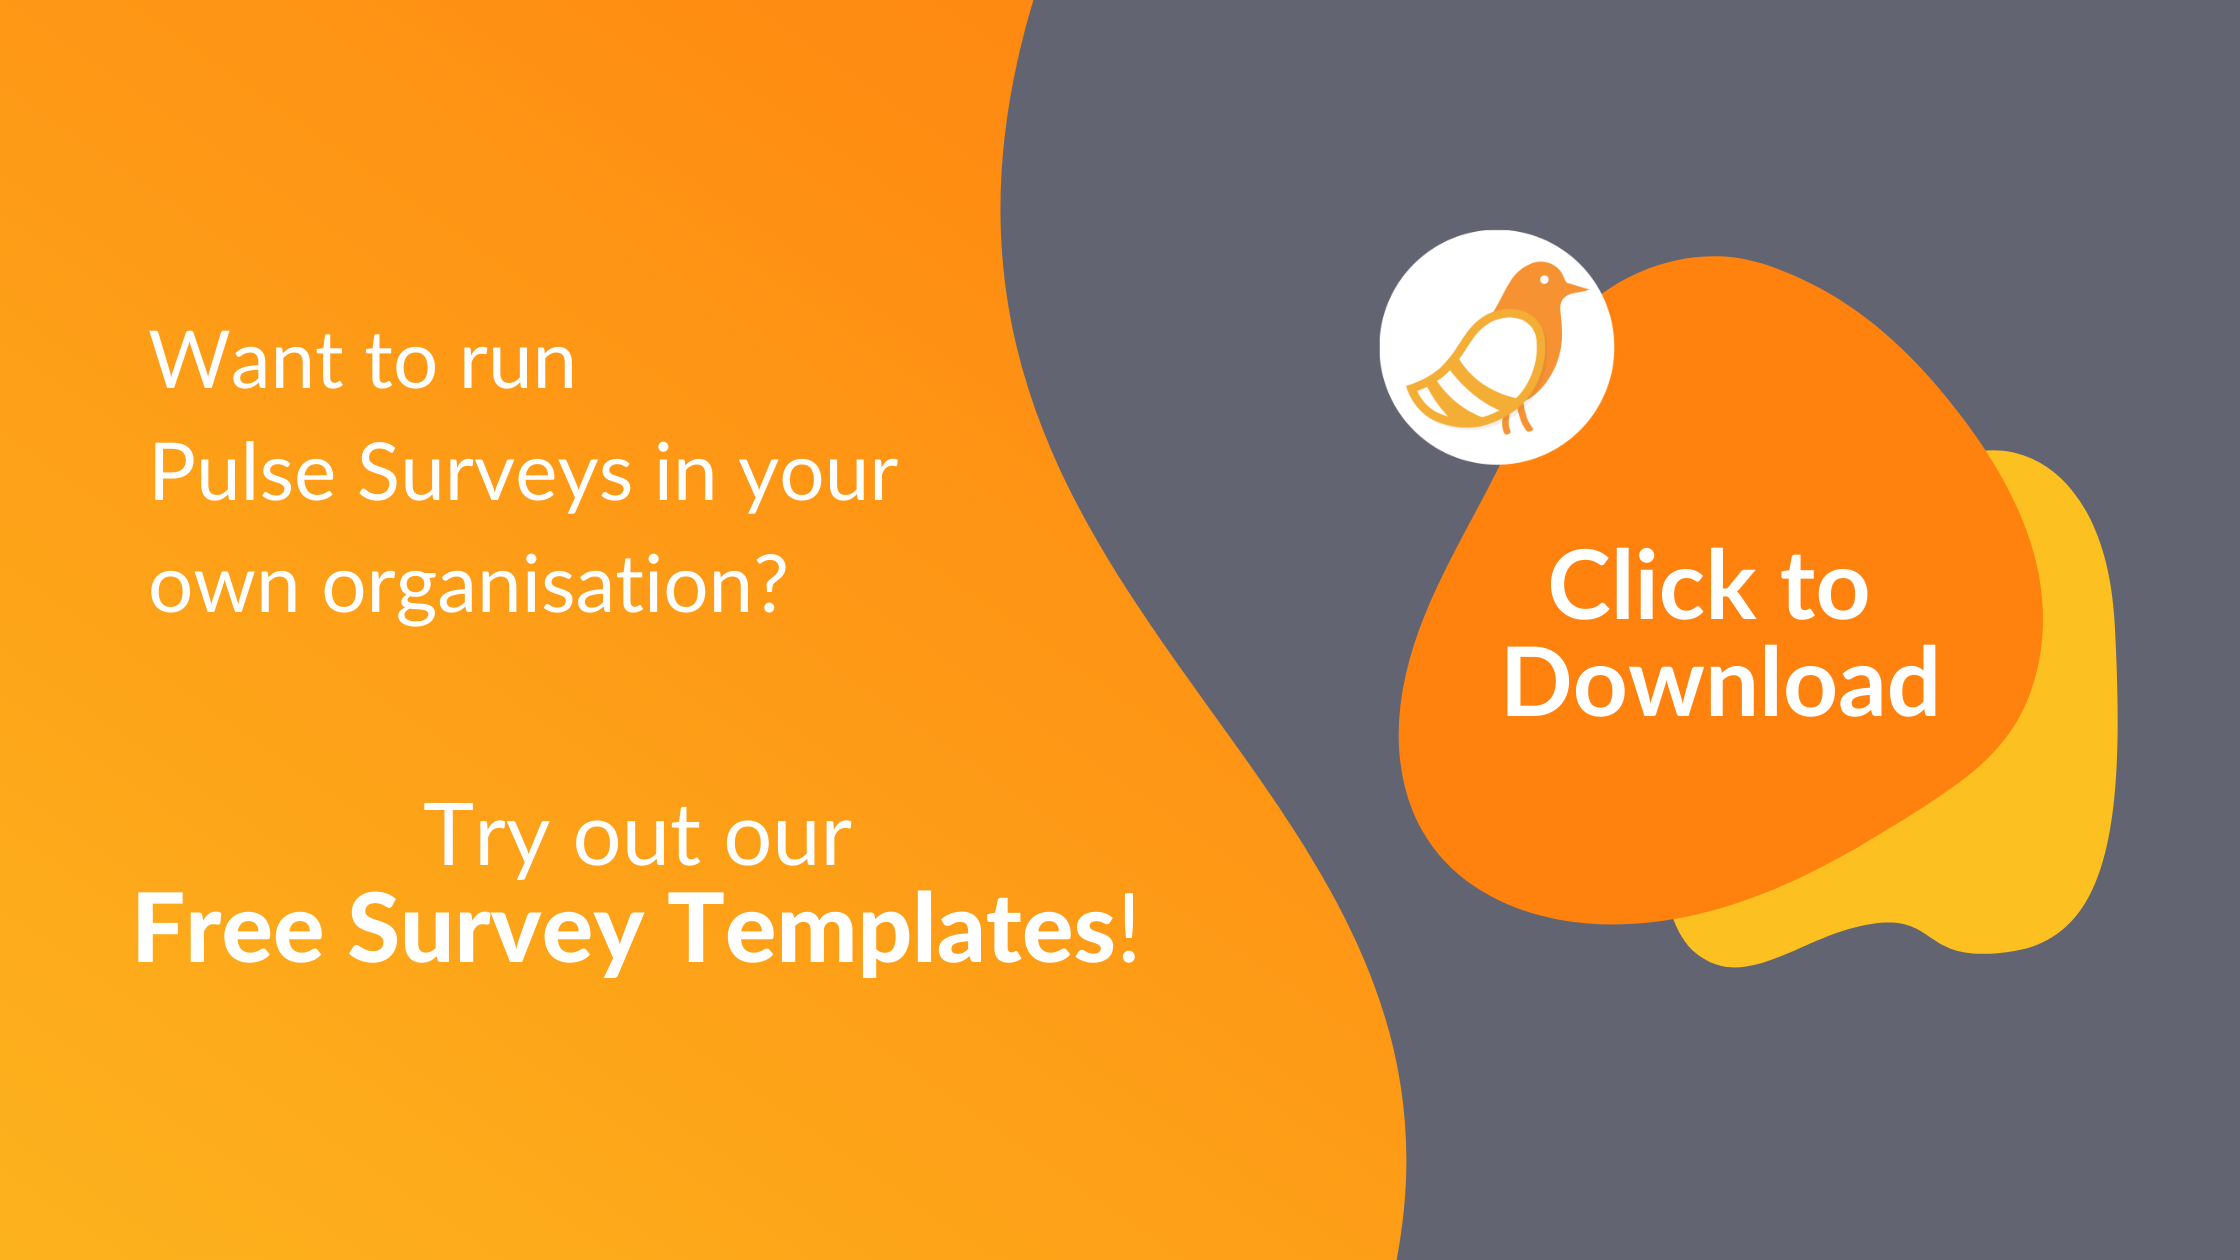 Want to run Pulse Surveys in your own organisation? Try out our free survey templates! Click here to download.